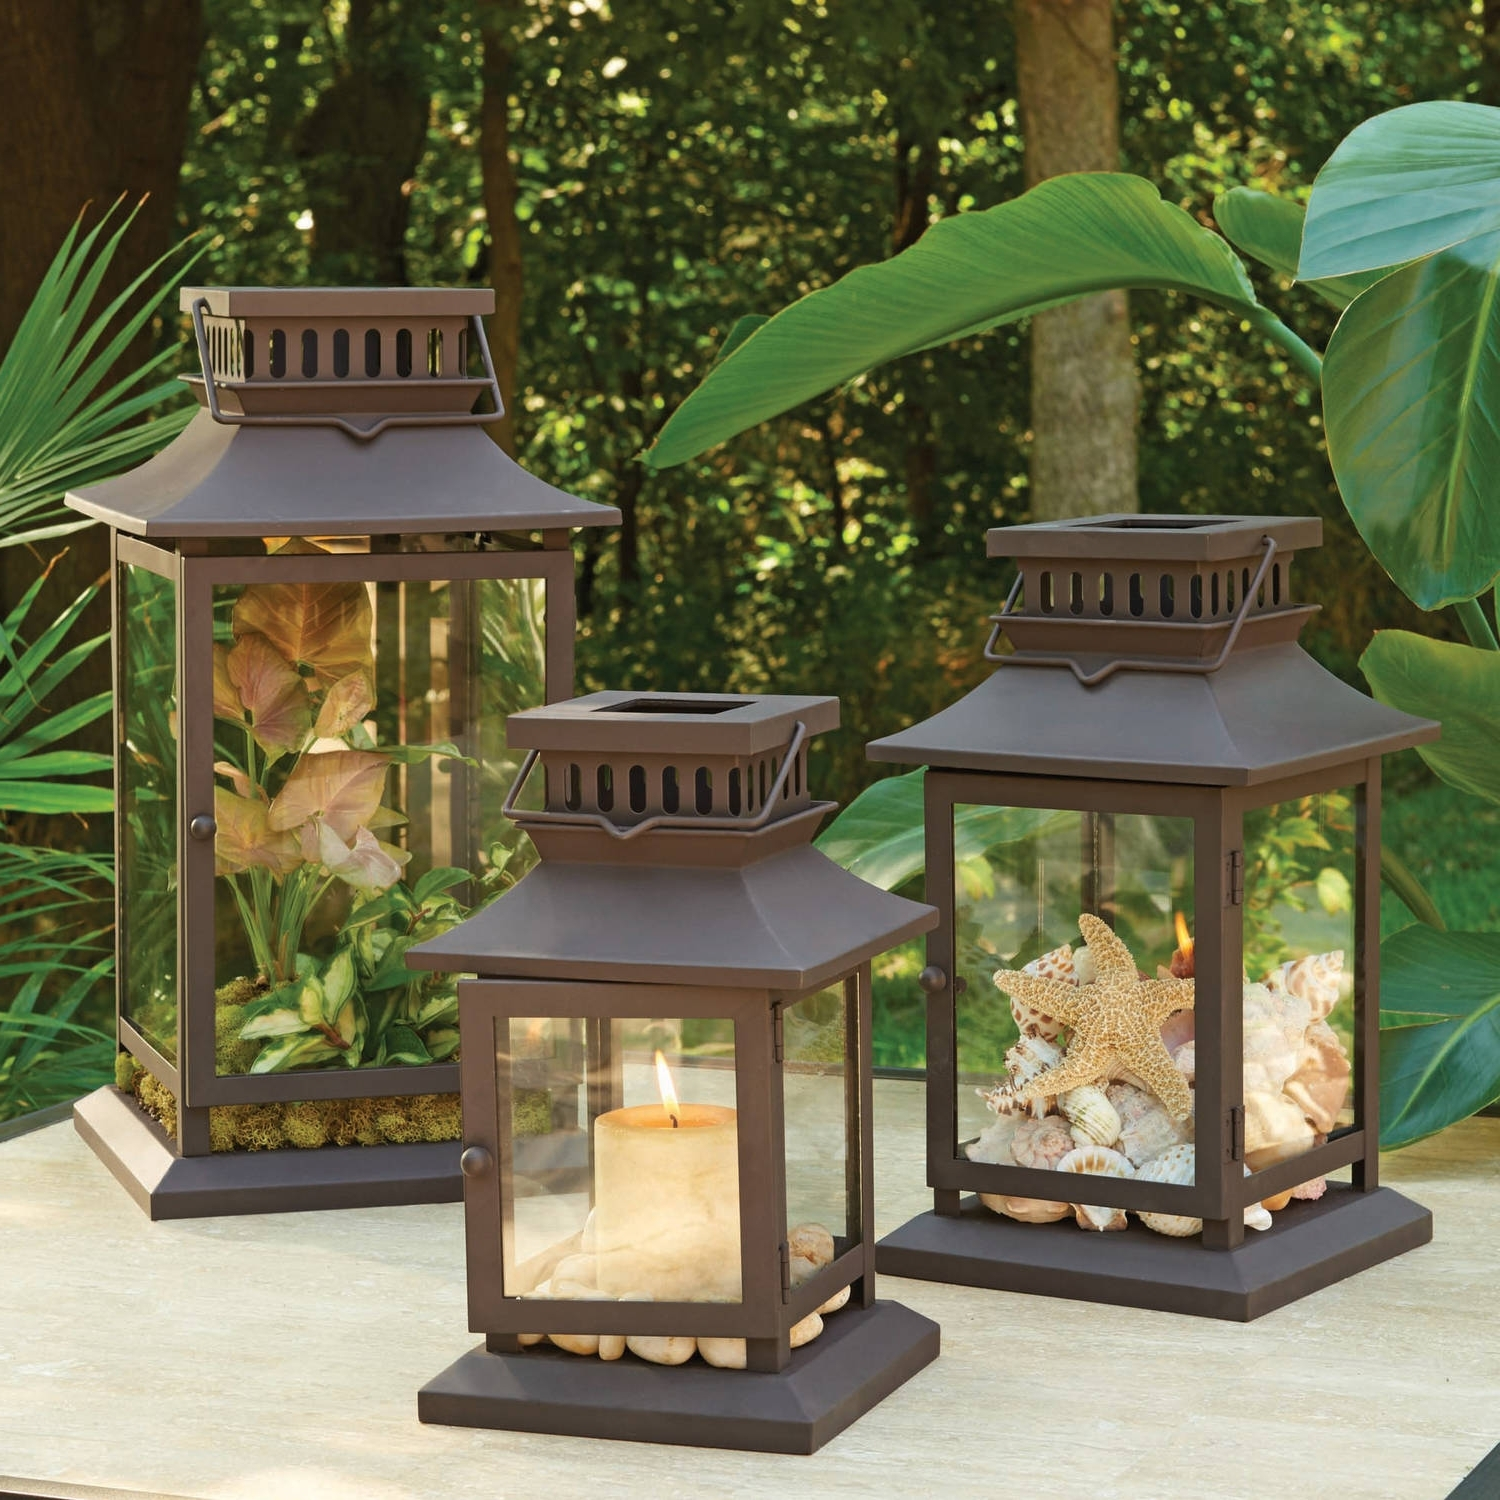 Famous Better Homes And Gardens Square Metal Outdoor Lantern – Walmart Pertaining To Walmart Outdoor Lanterns (View 8 of 20)